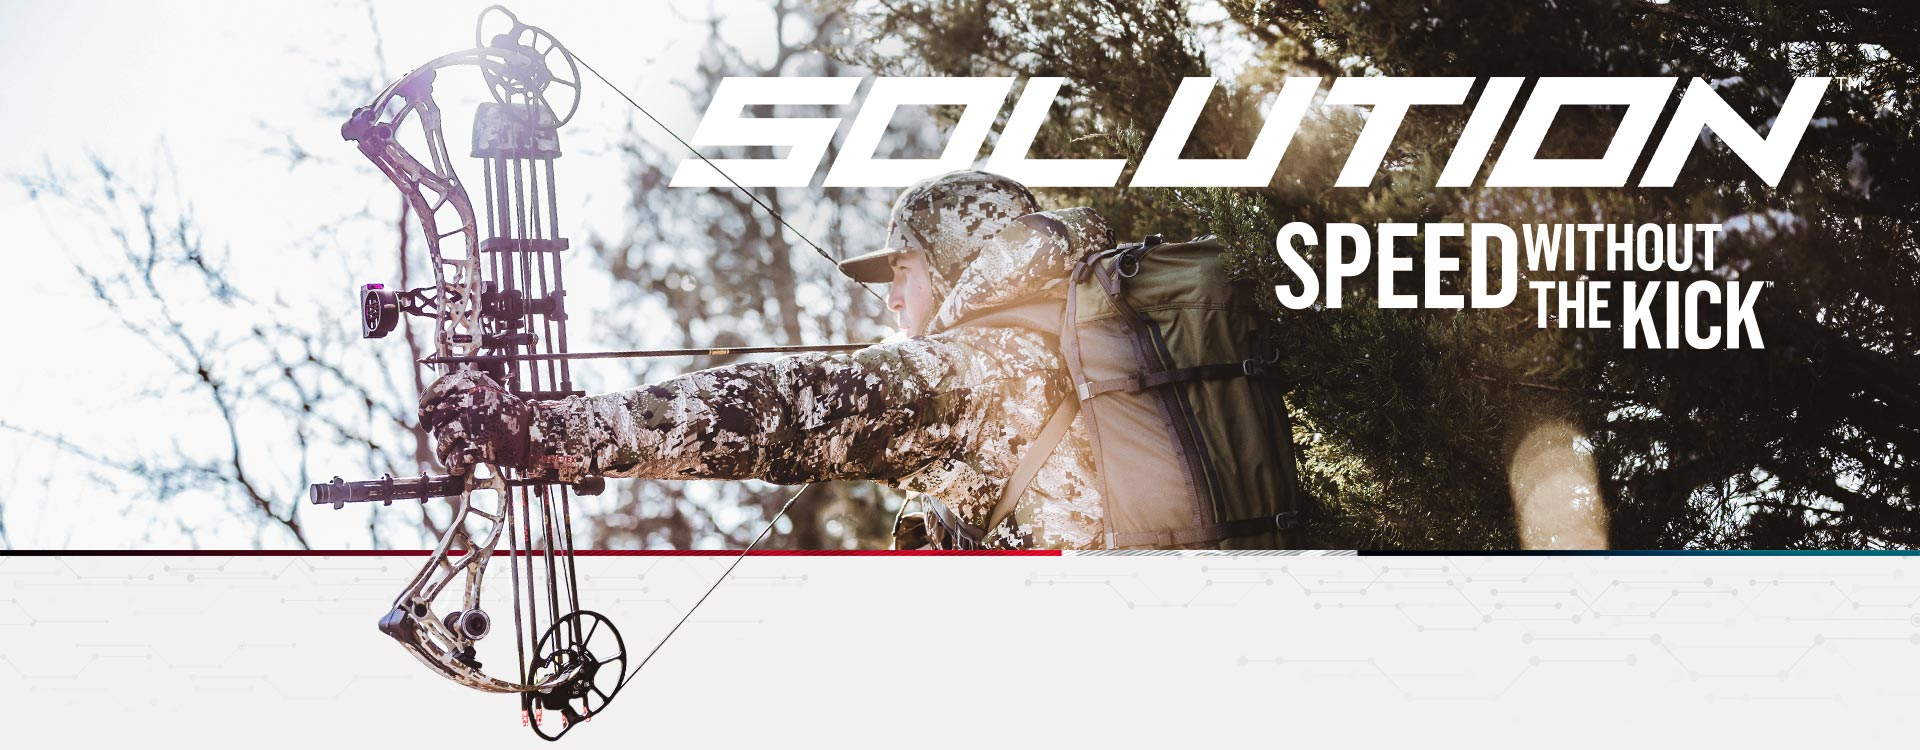 Bow hunter wearing camo clothes shooting a Bowtech Solution archery compound bow